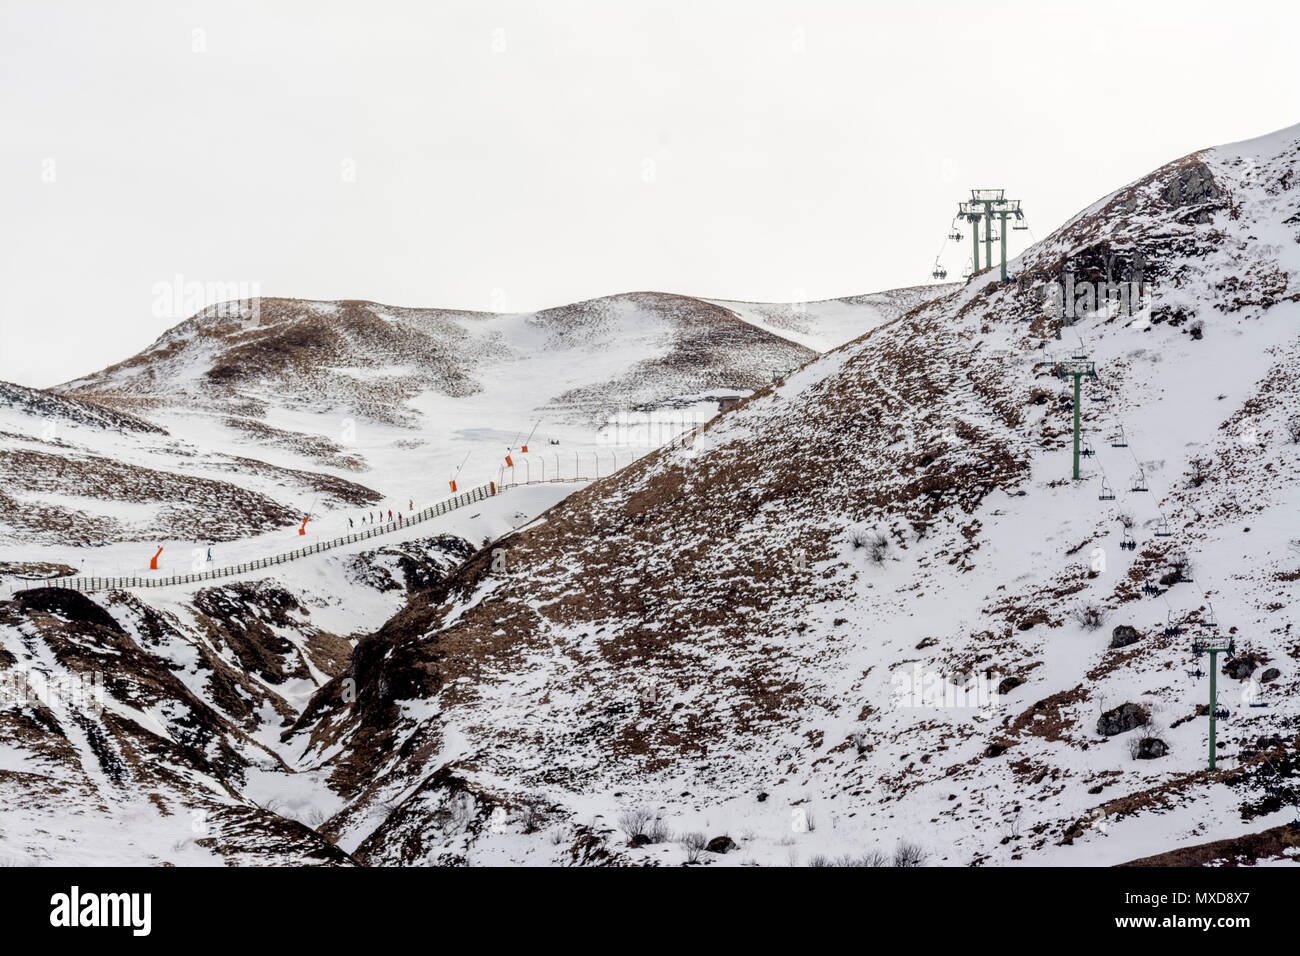 Chairlifts. Le Mont Dore ski resort, Auvergne, France - Stock Image